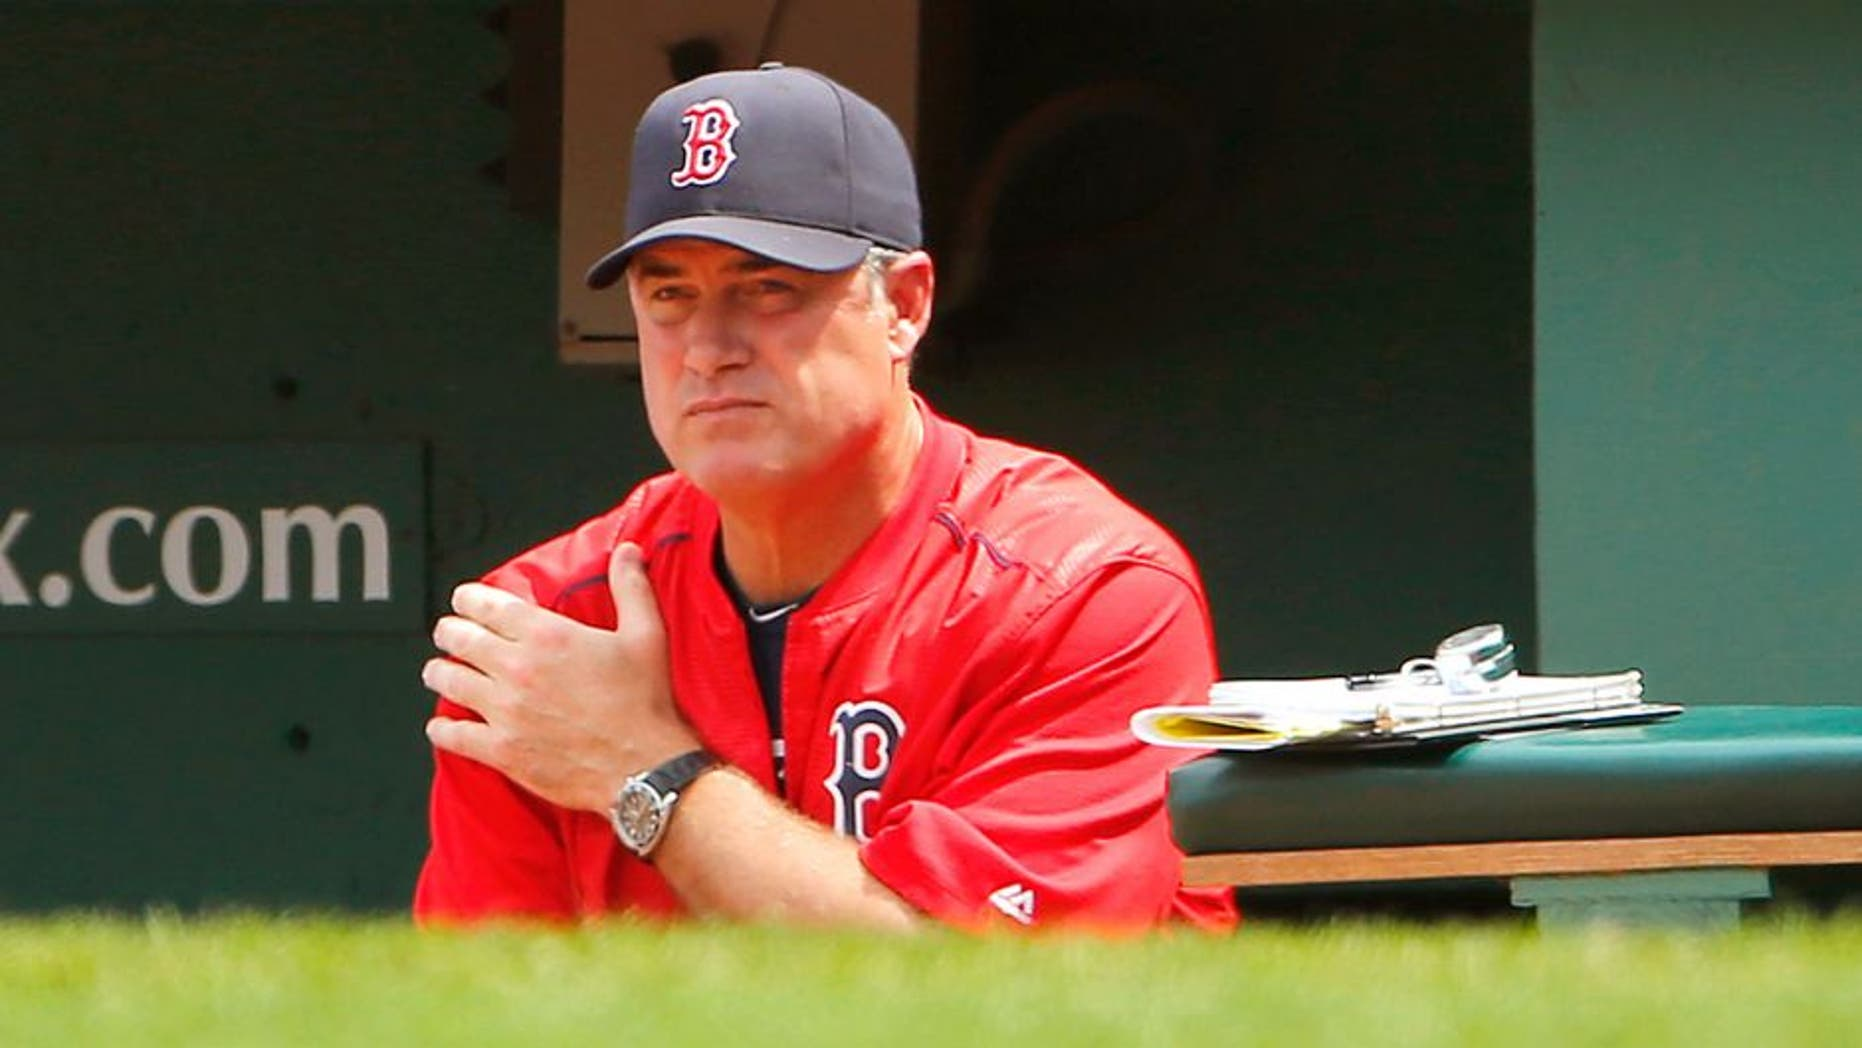 BOSTON, MA - JUNE 25: Manager John Farrell #53 of the Boston Red Sox in the dugout during the fourth inning in a game against the Baltimore Orioles at Fenway Park on June 25, 2015 in Boston, Massachusetts. (Photo by Winslow Townson/Getty Images)